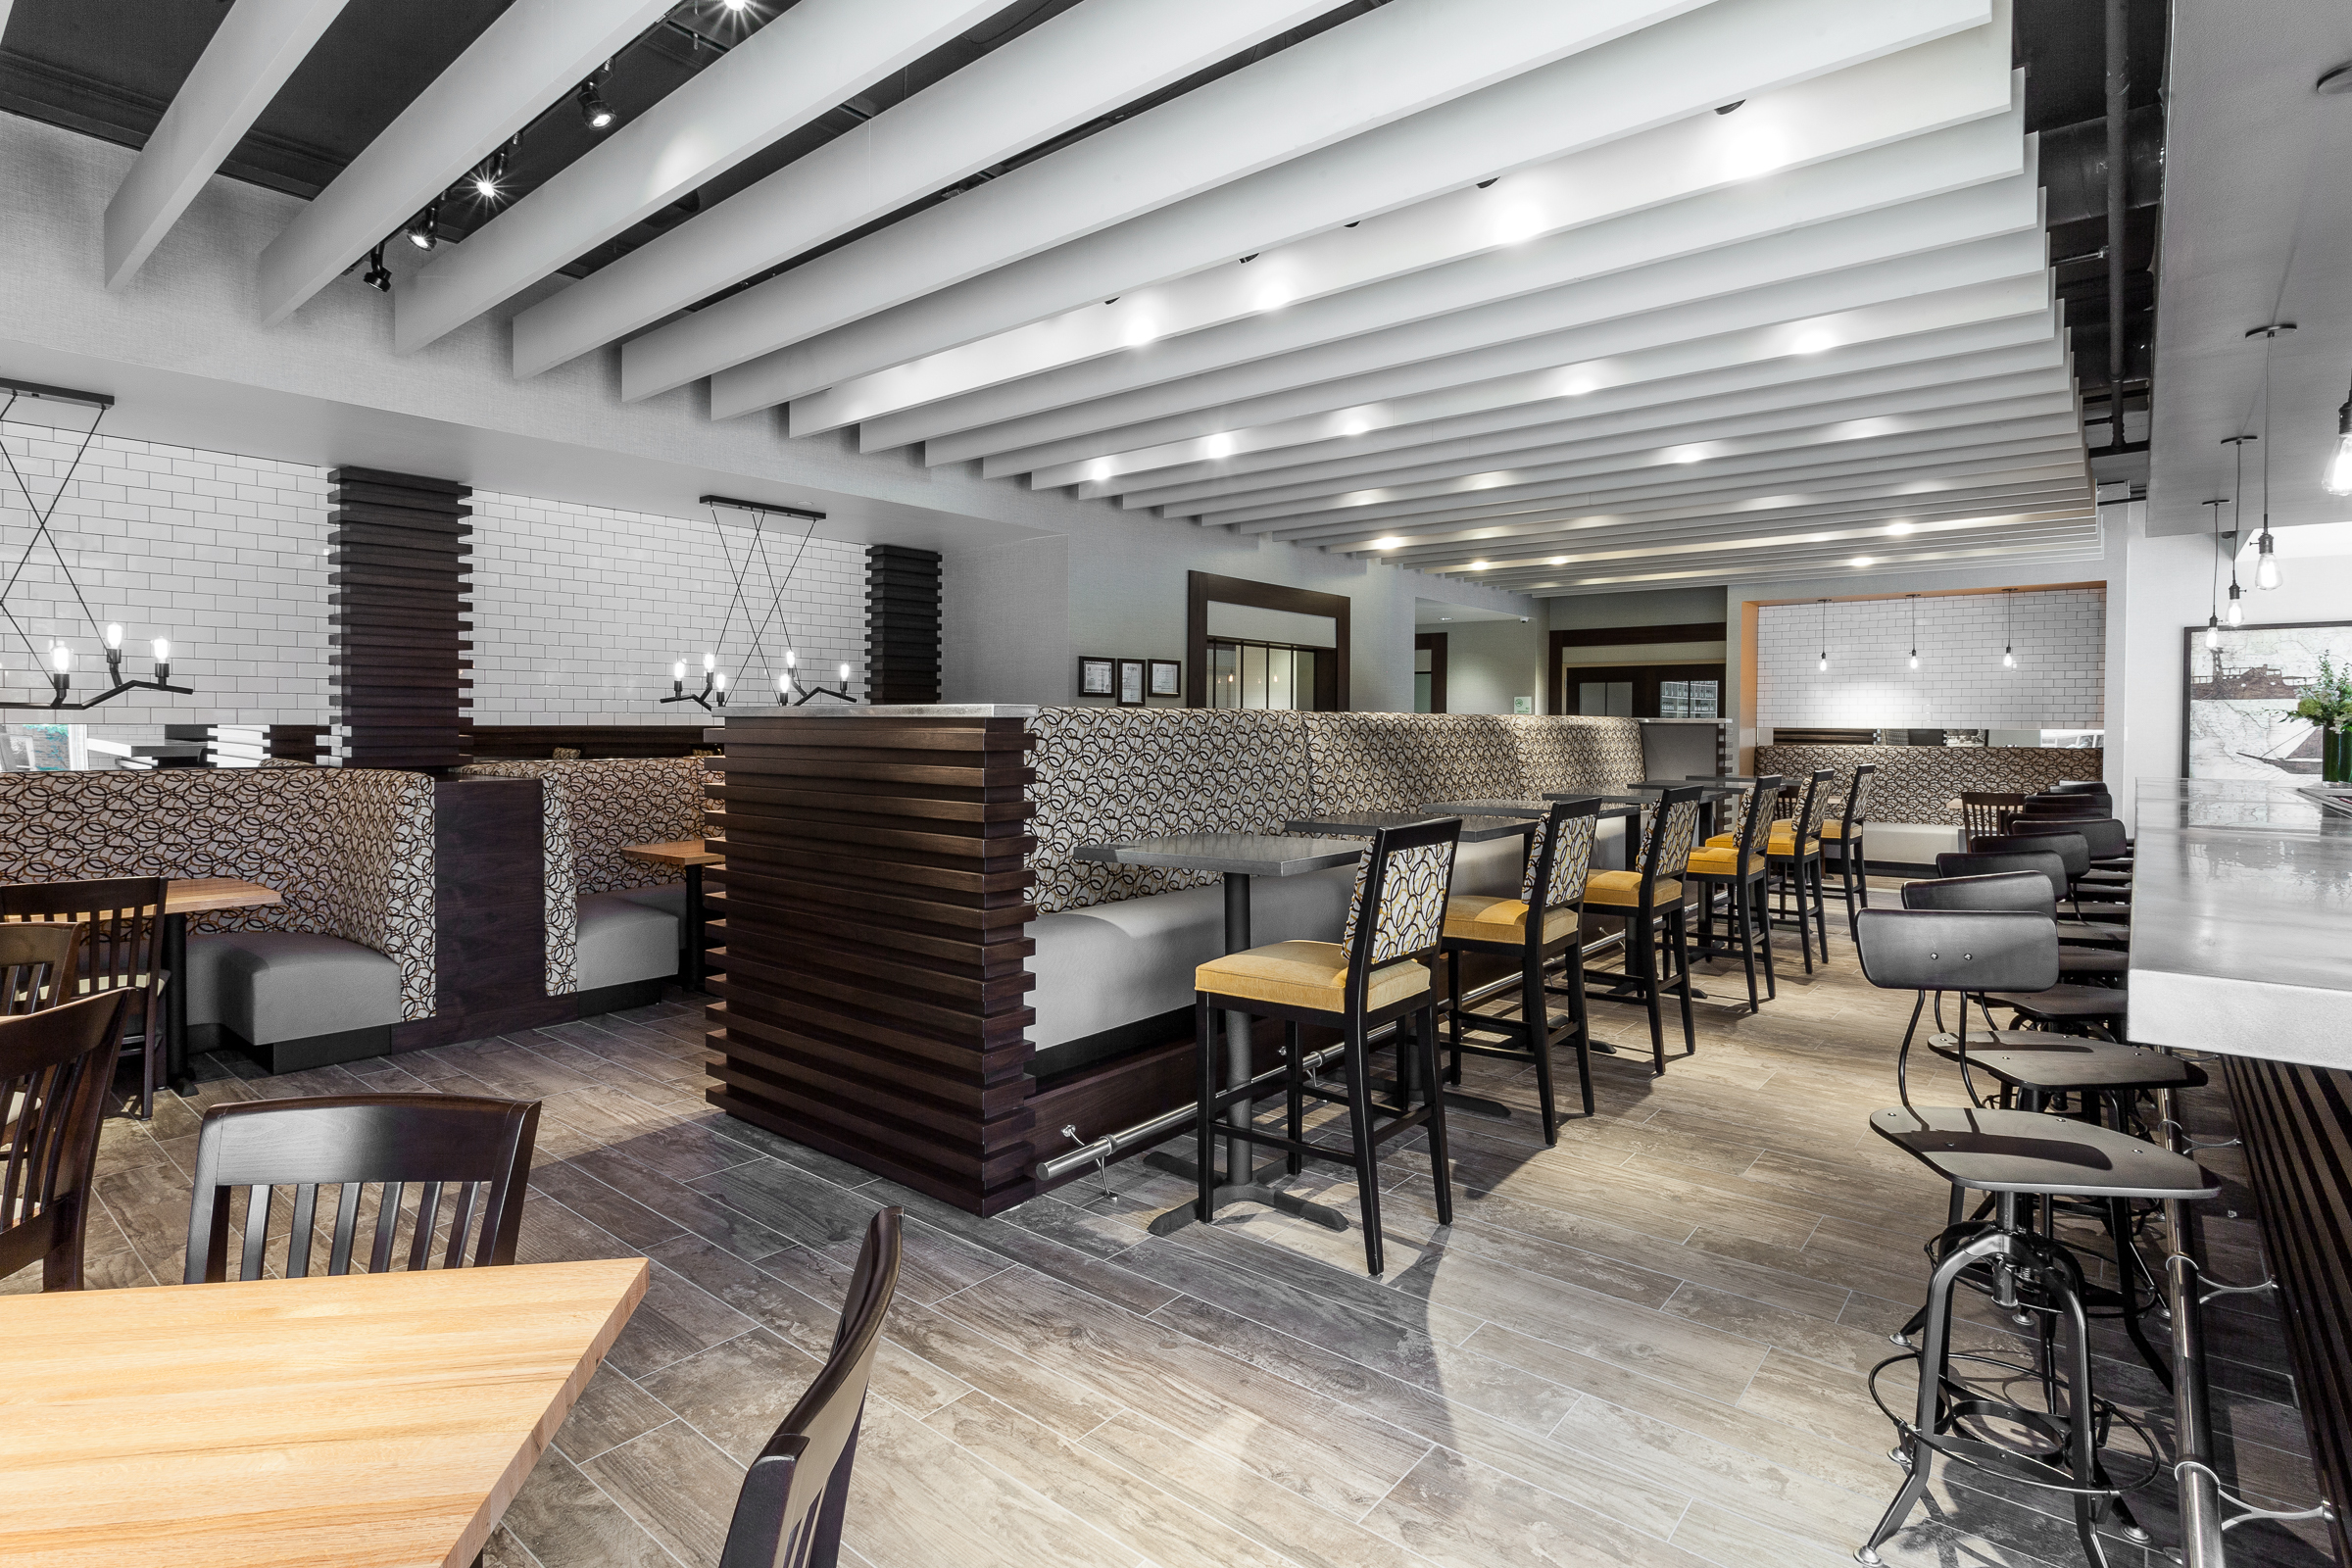 """Holiday Inn Chicago North - Evanston - University Plaza Cafe """"Open for Business!"""" Gourmet Comfort Food (Photo: Business Wire)"""